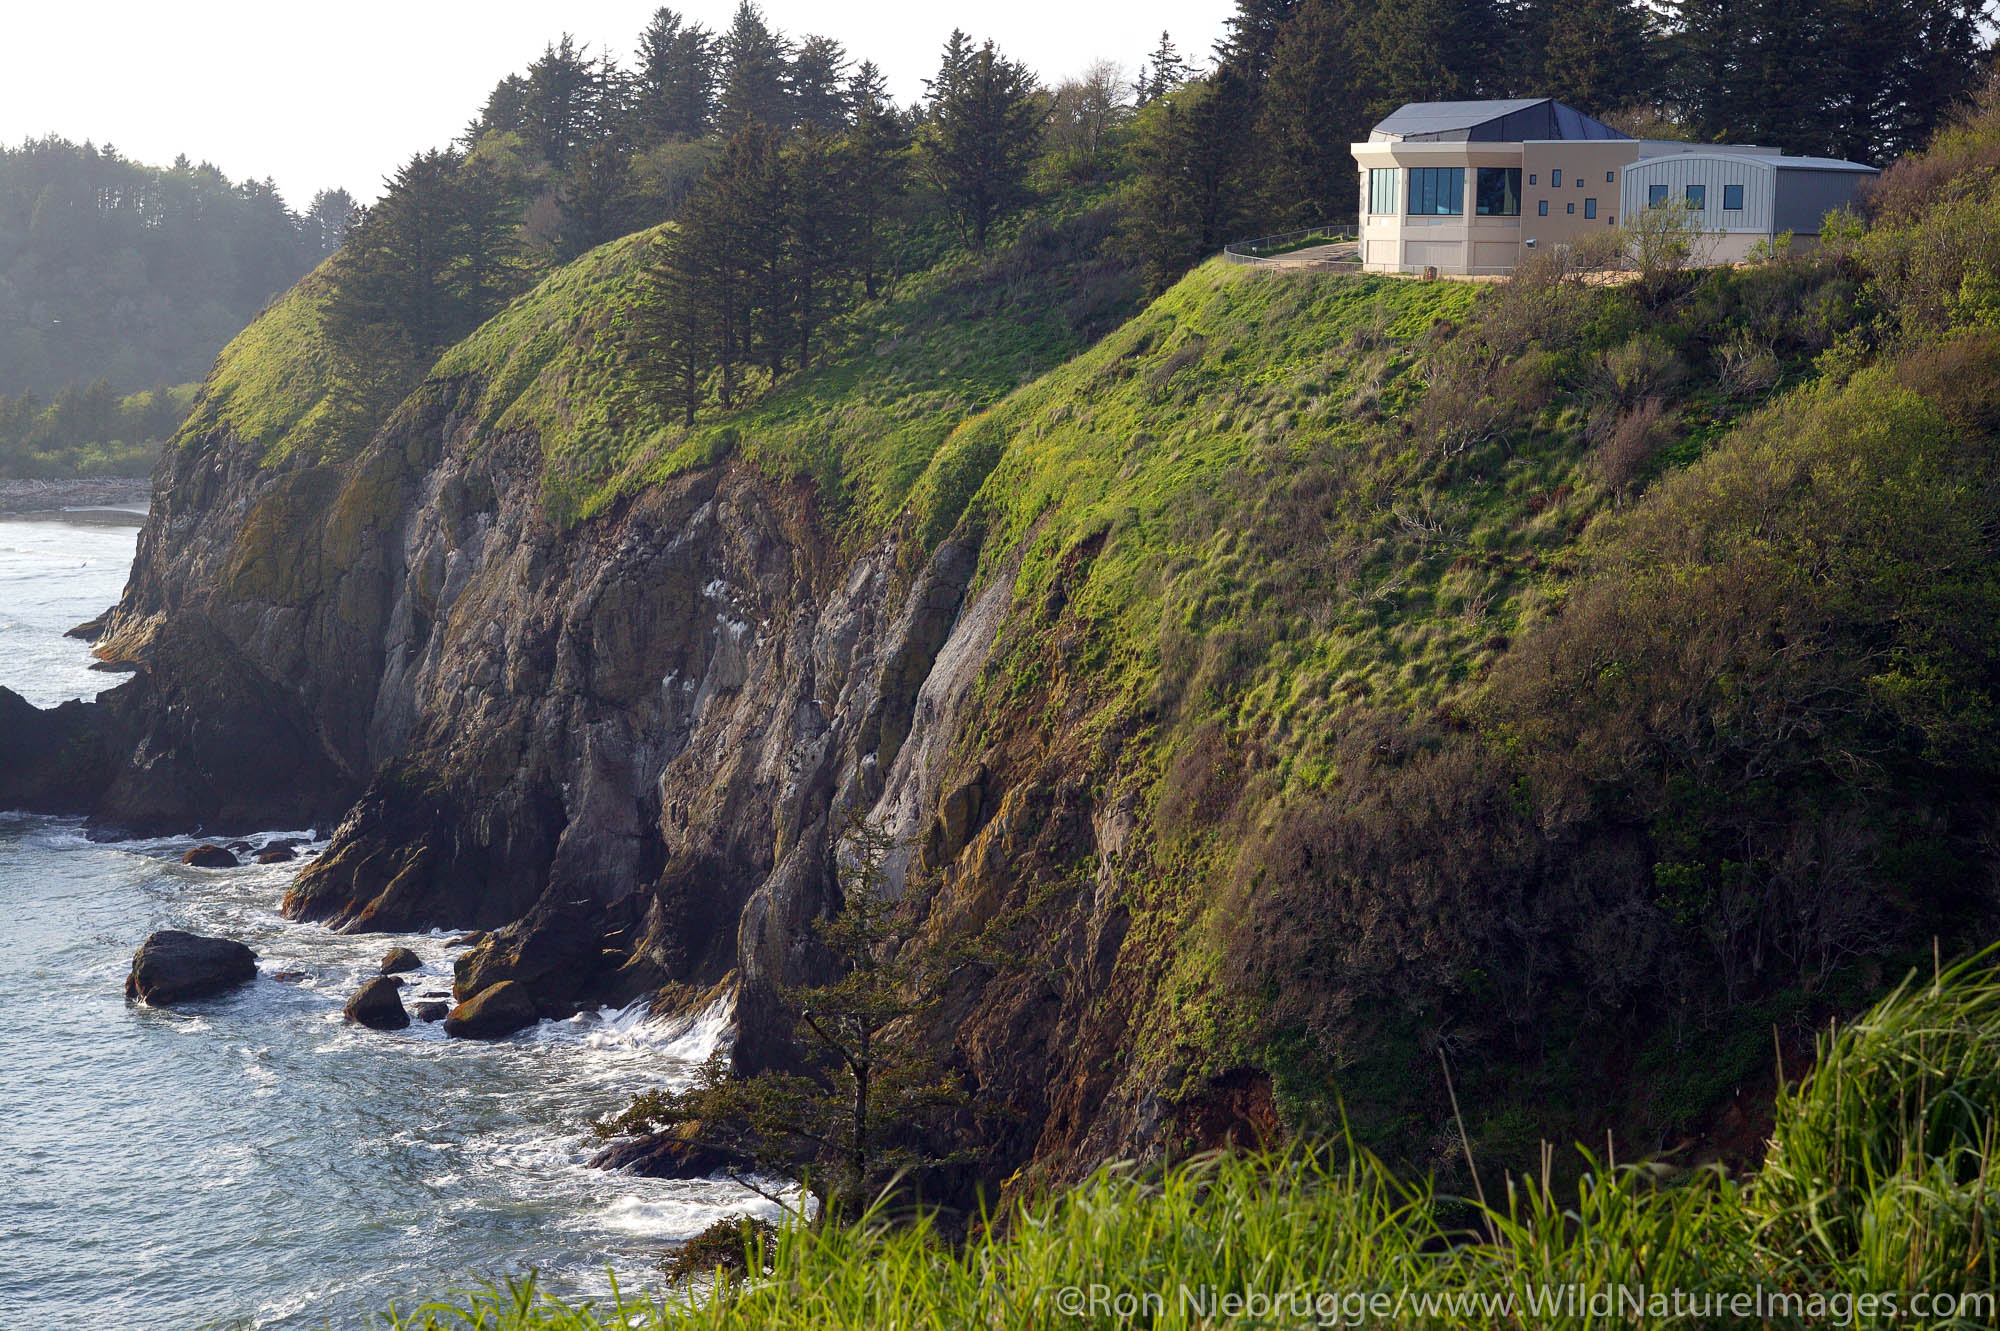 Lewis & Clark Interpretive Center, at the mouth of the Columbia River, Cape Disappointment State Park, Washington.